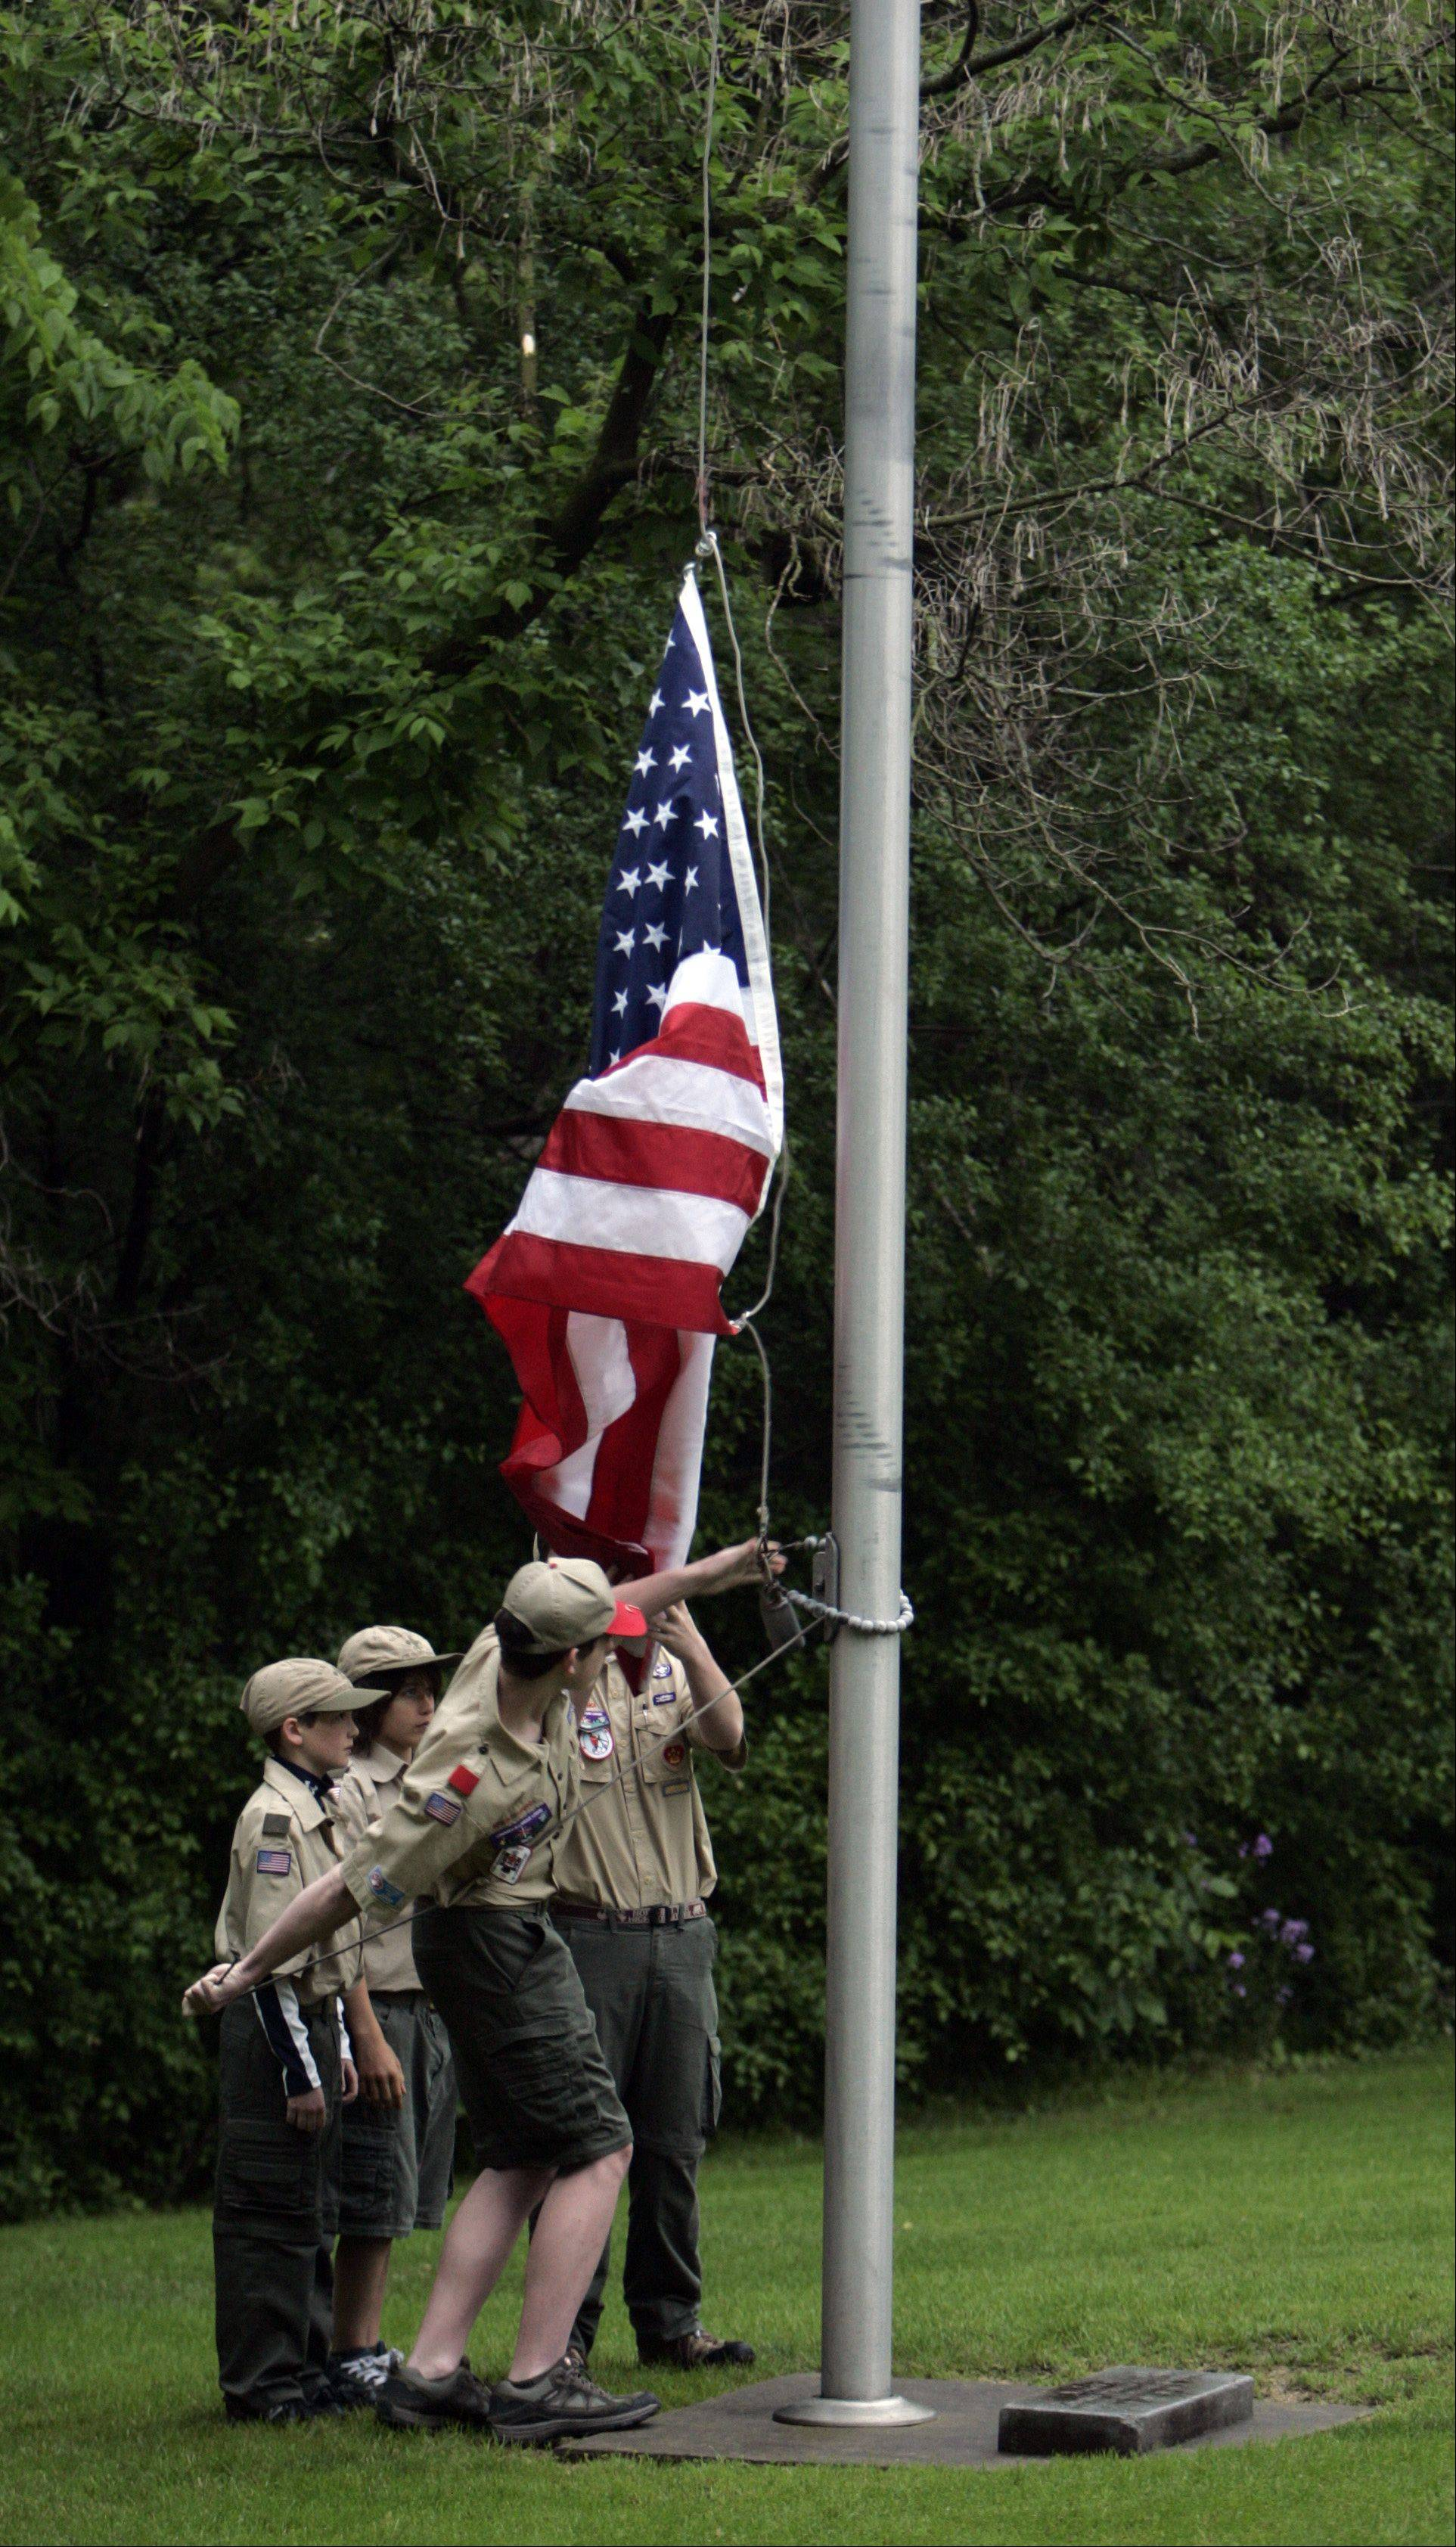 Members of Boy Scout Troop 46 raise the colors during the Memorial Day celebration at South Cemetery in St. Charles early Monday morning.